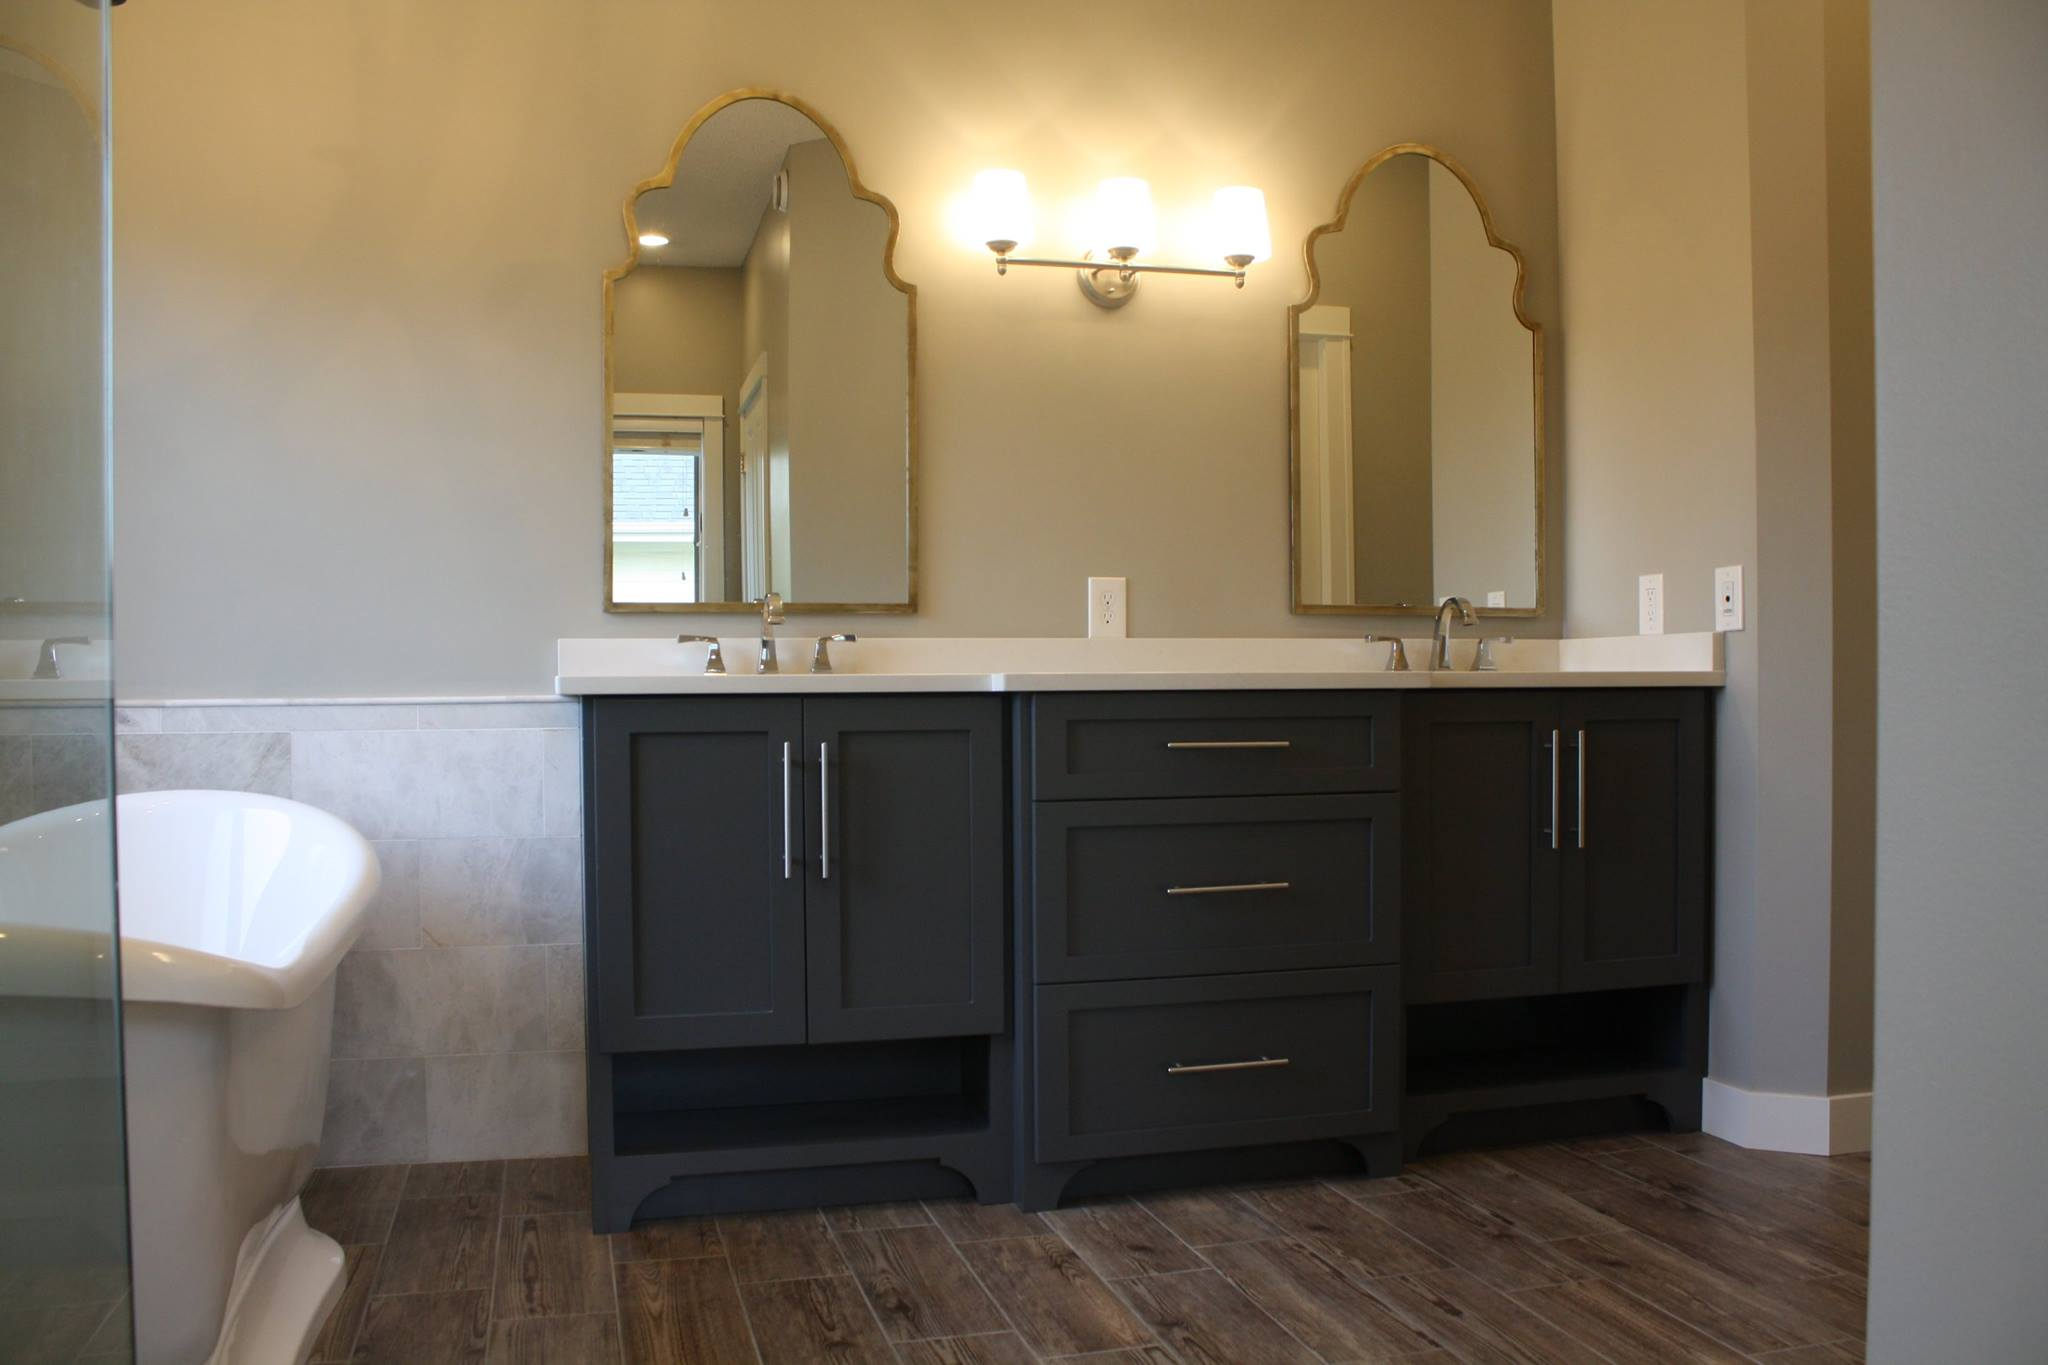 Bathroom Vanity Installation Cost